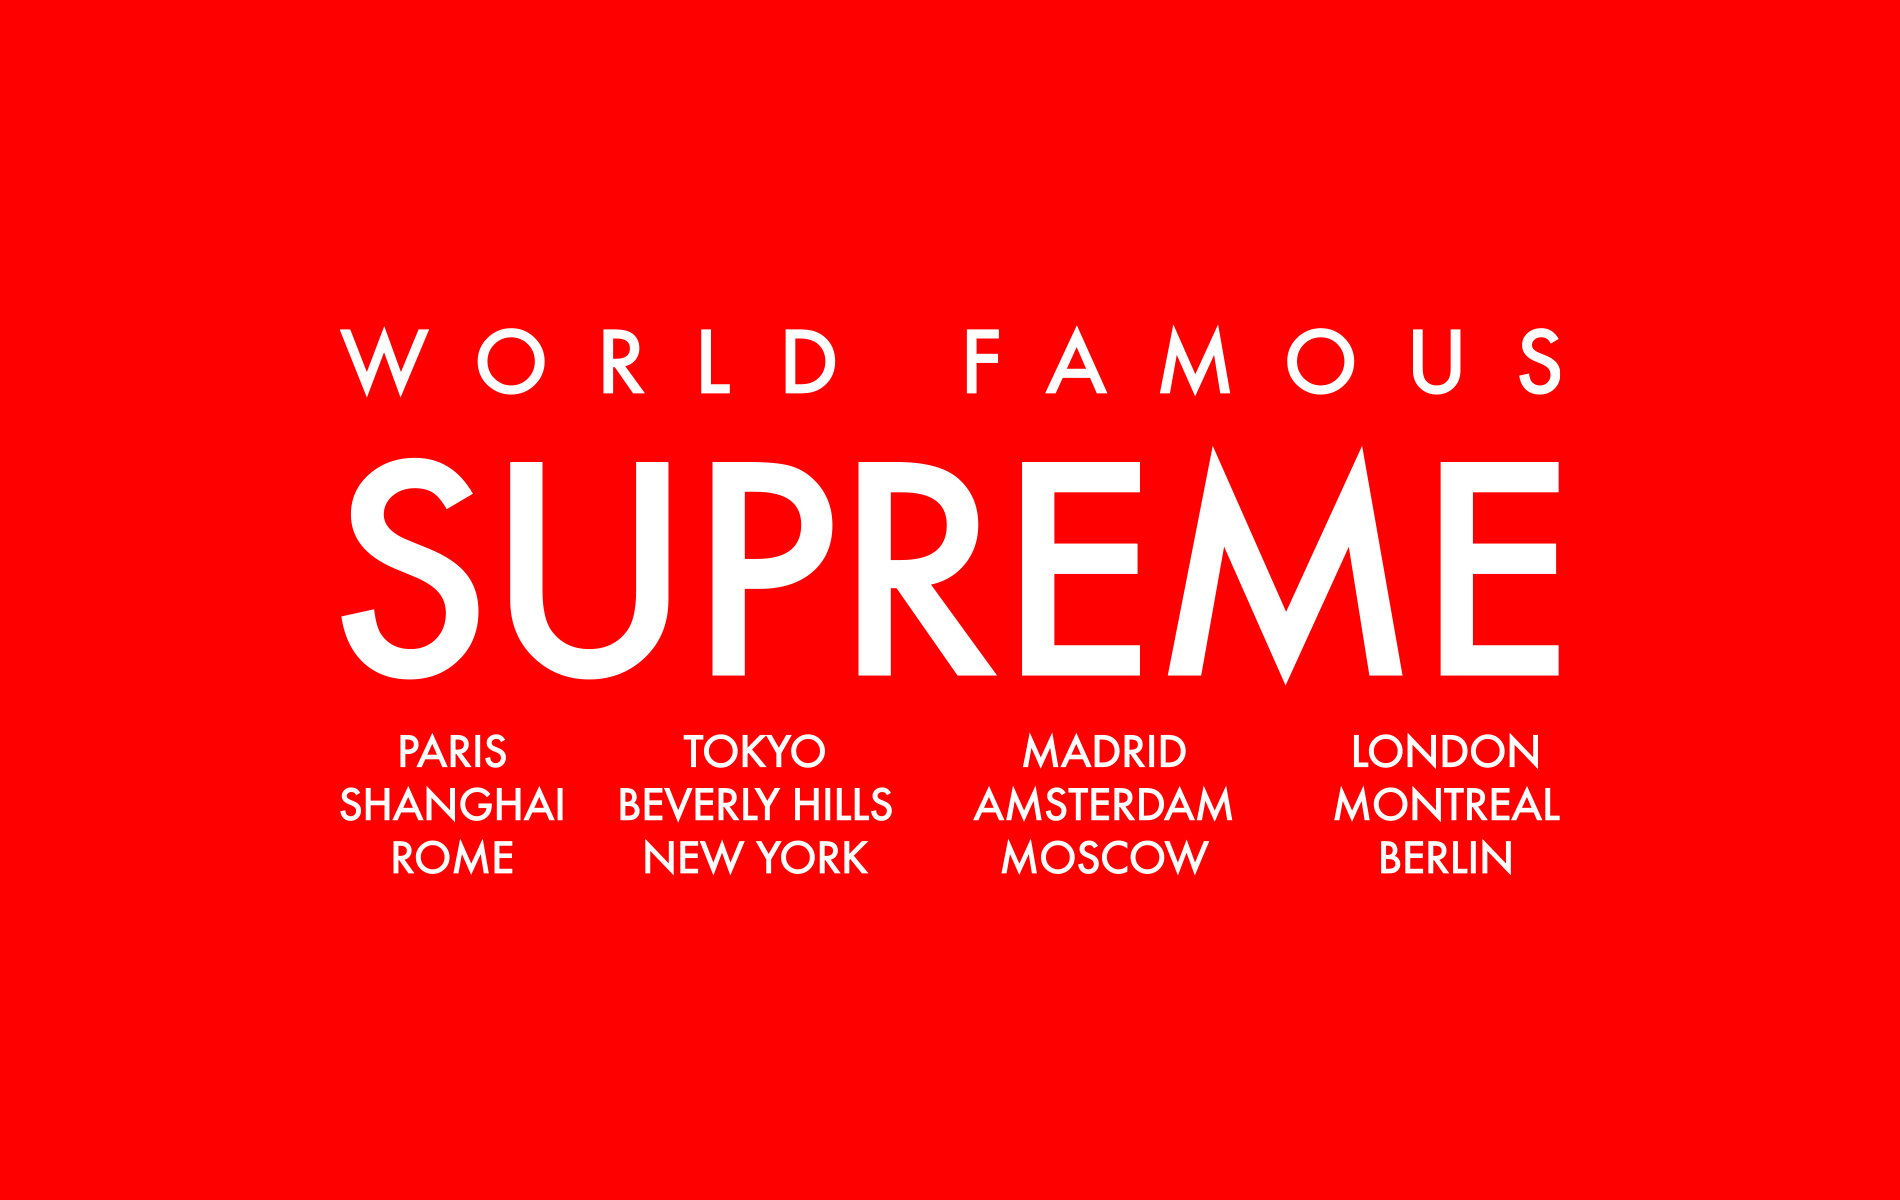 70 Supreme Wallpapers in 4K   AllHDWallpapers 1900x1200